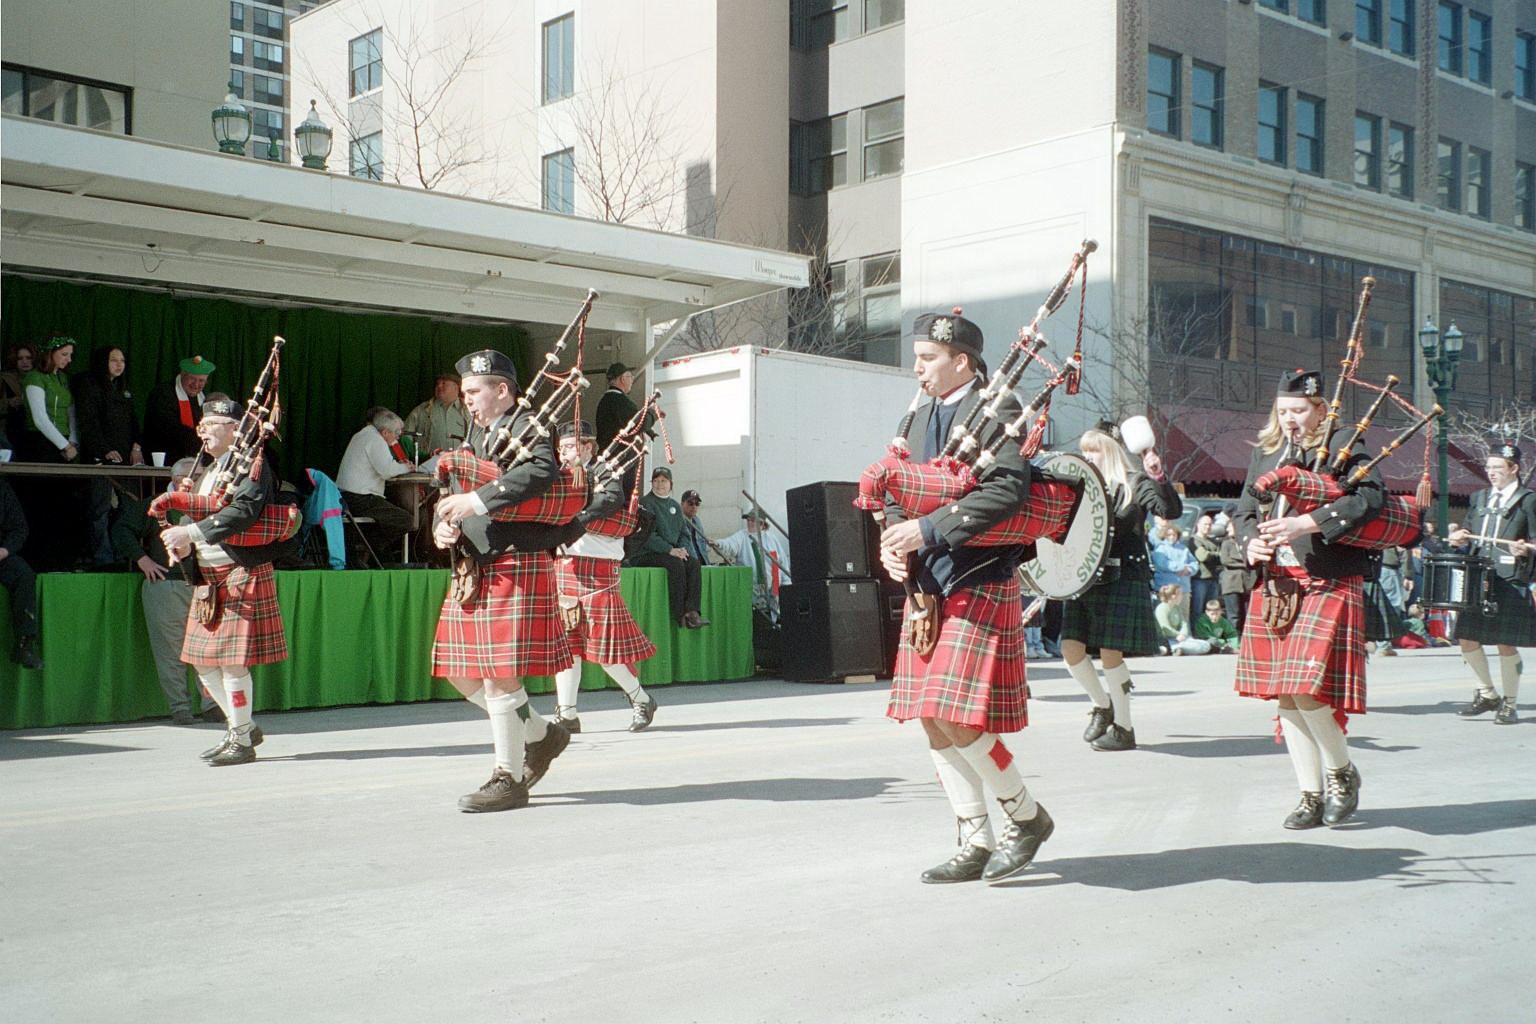 bagpipers party gif